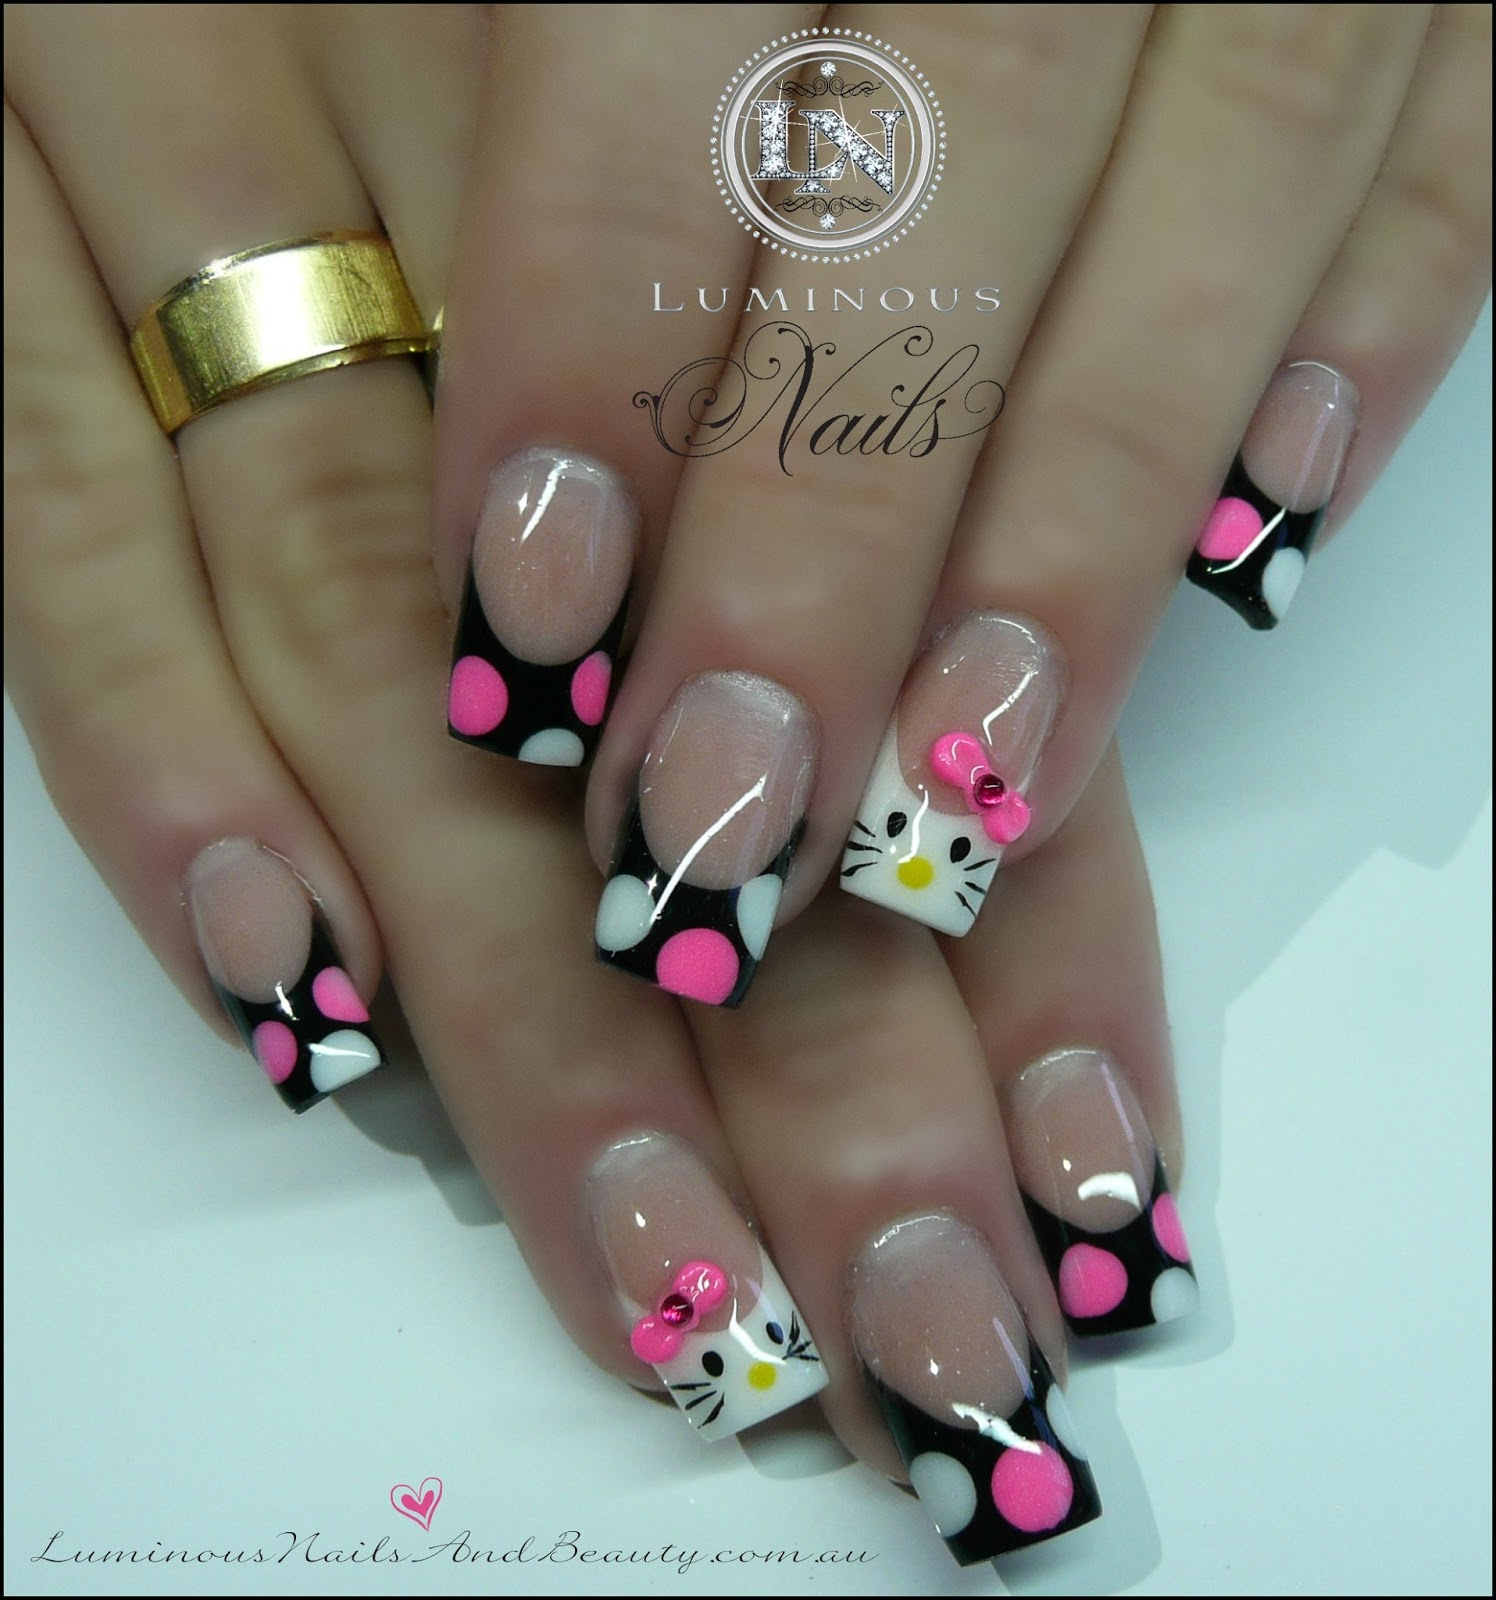 ... Nails,+Spray+tans.+Hello+Kitty+Nails+with+rainbow+black+&+White,+Neon